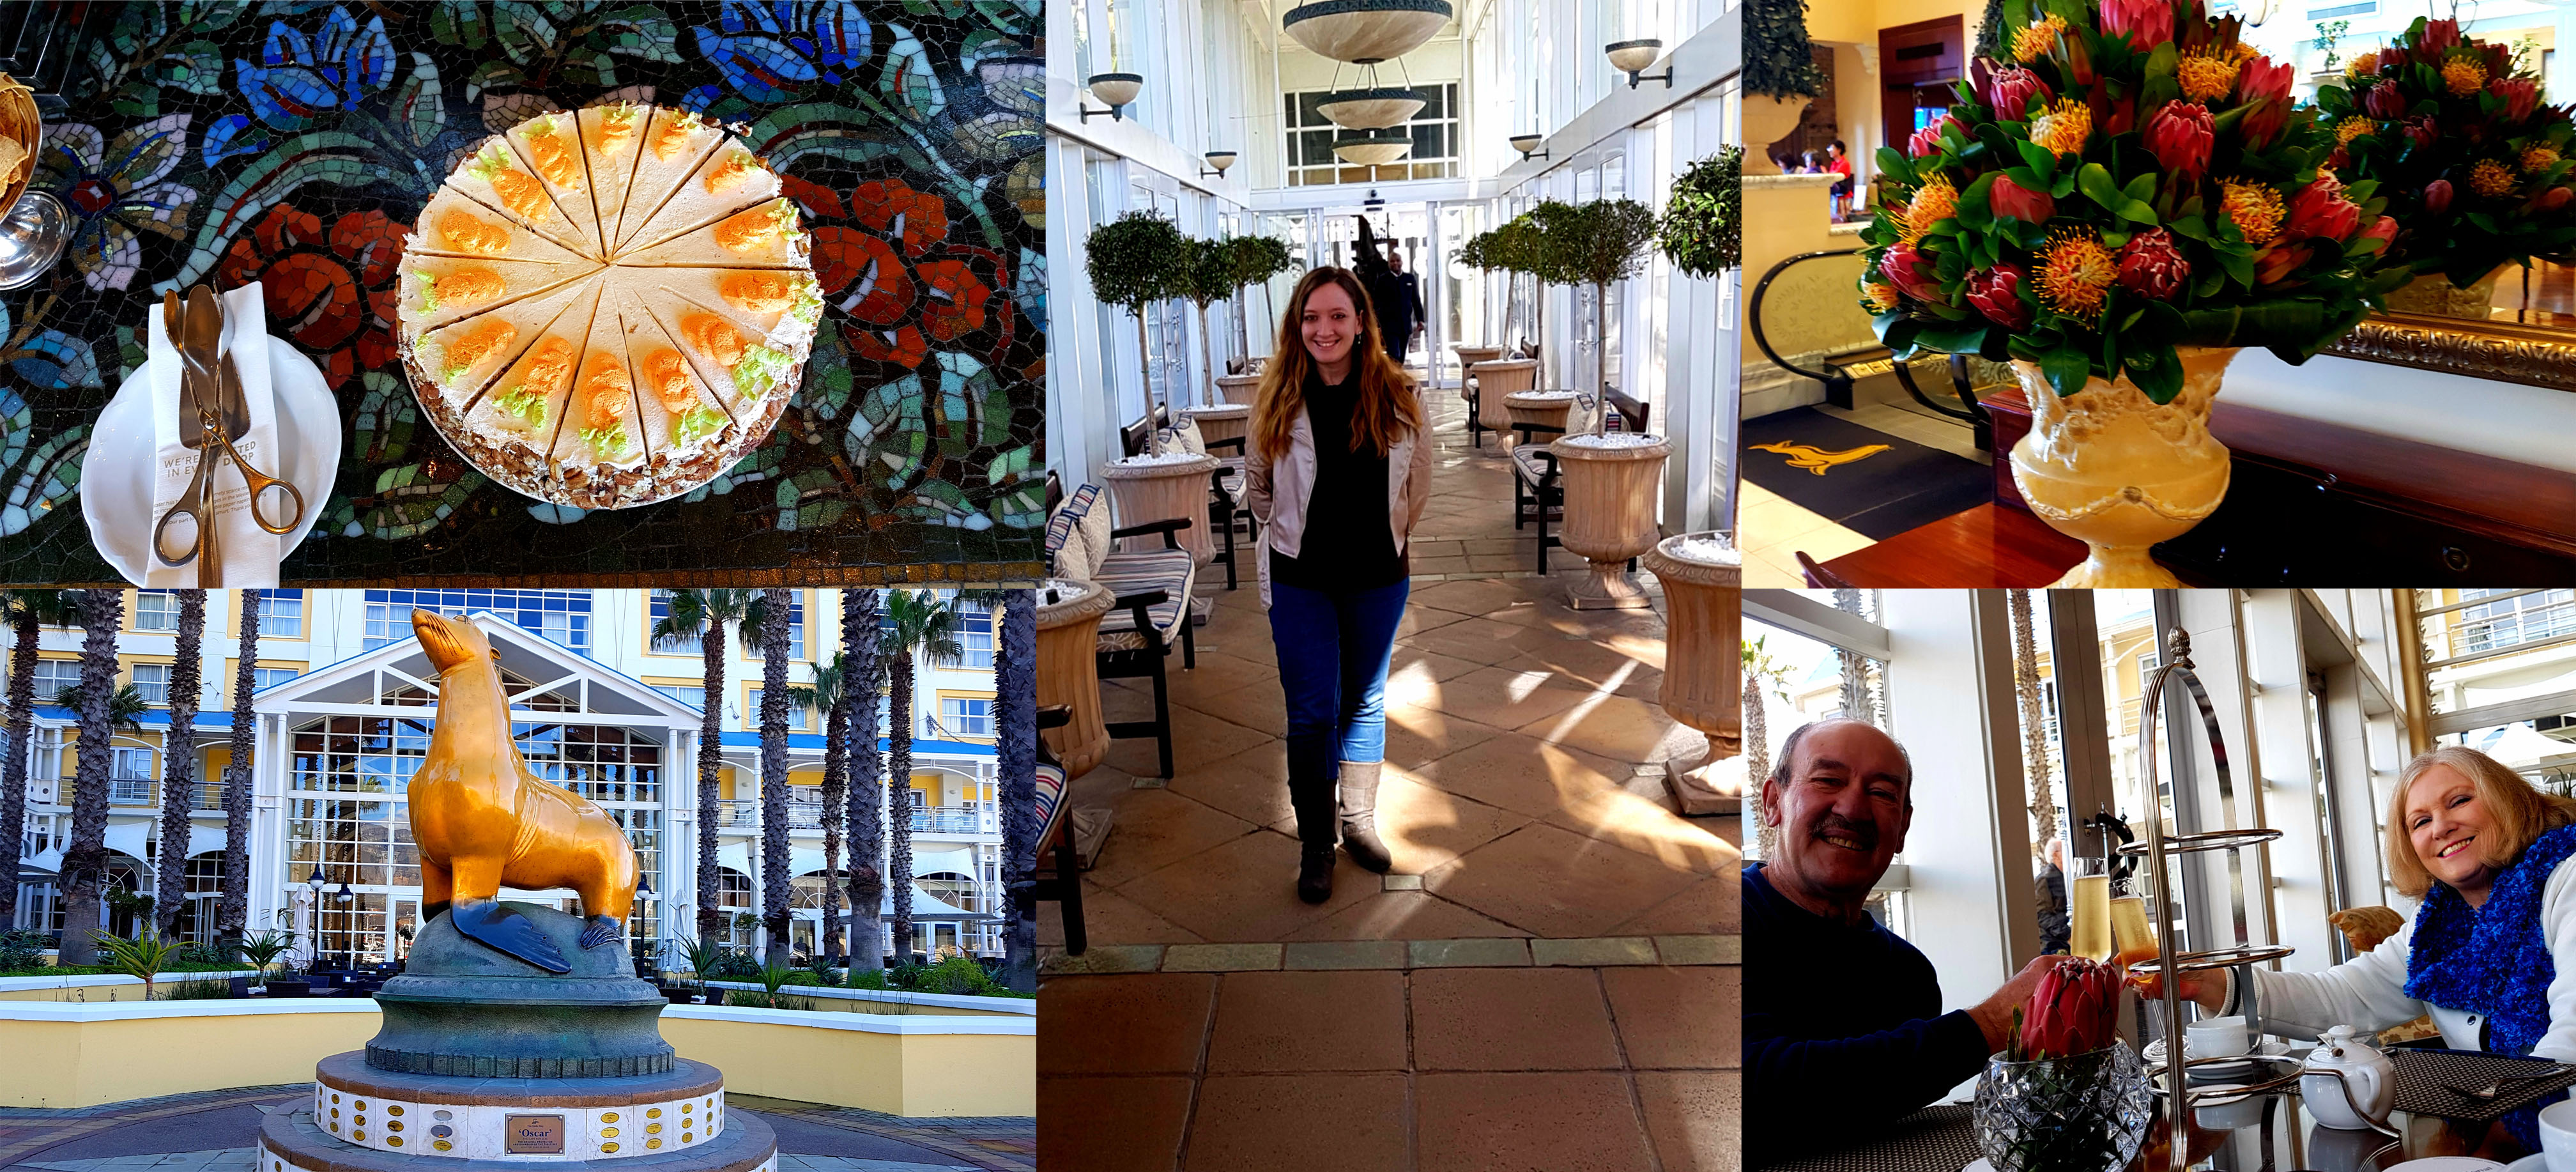 We were invited to review the new winter high tea menu at the Table Bay Hotel, so ventured off after work was done for the day on Thursday. See lots of happy faces and lovely sights.